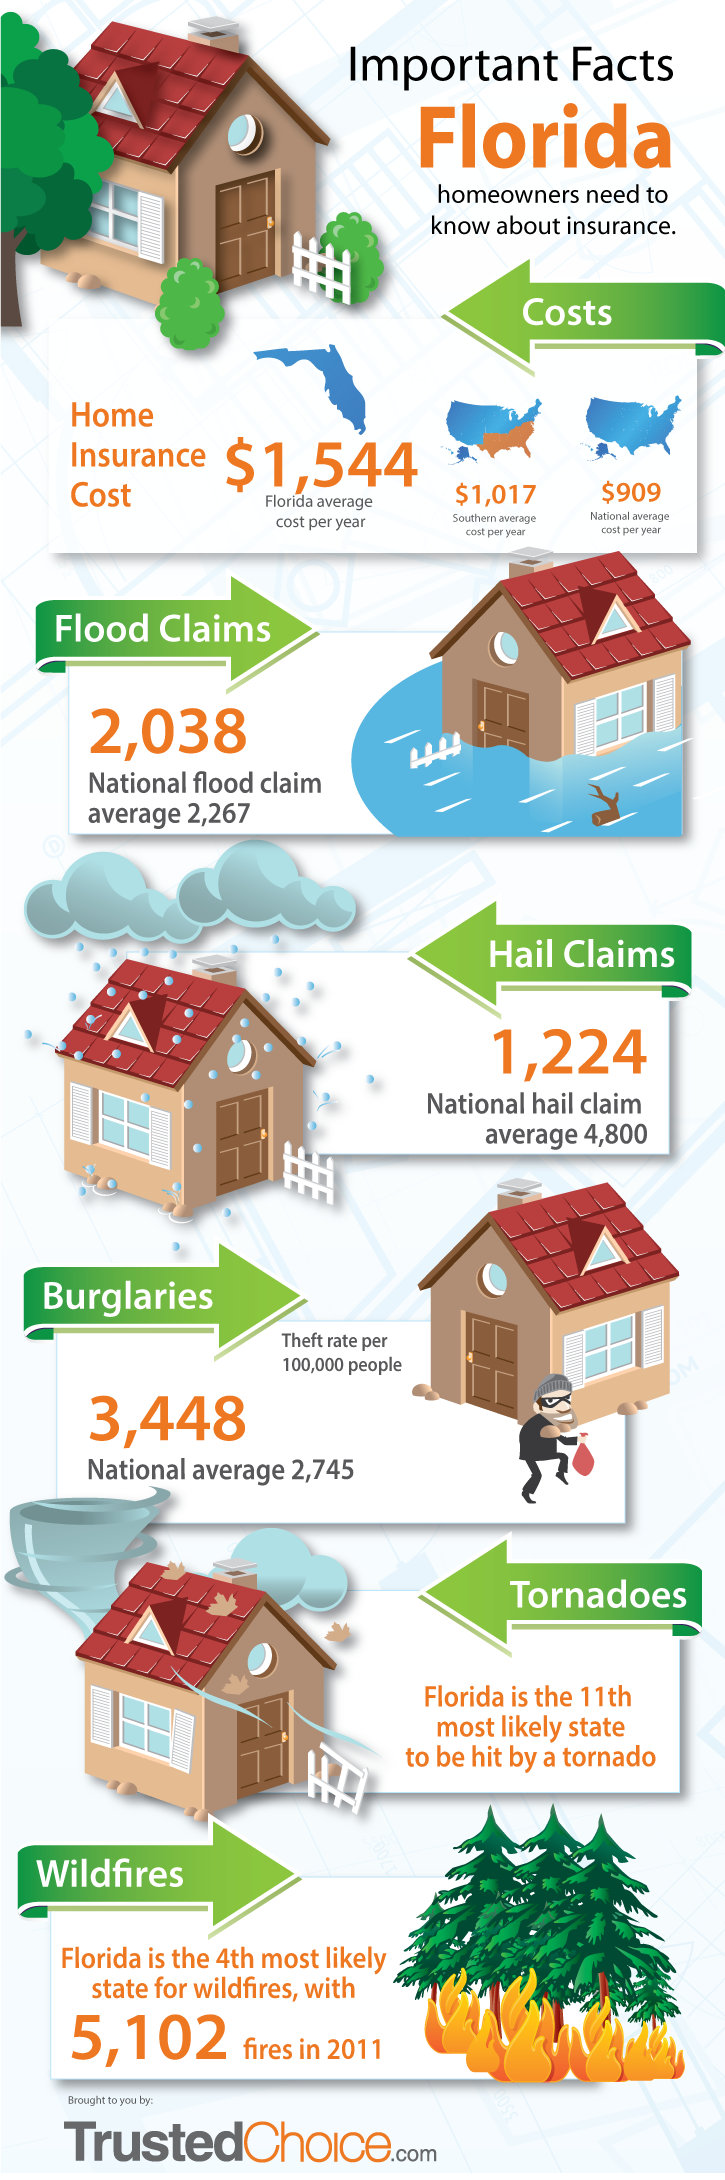 Florida Homeowner Insurance Claims Facts Home Insurance Building